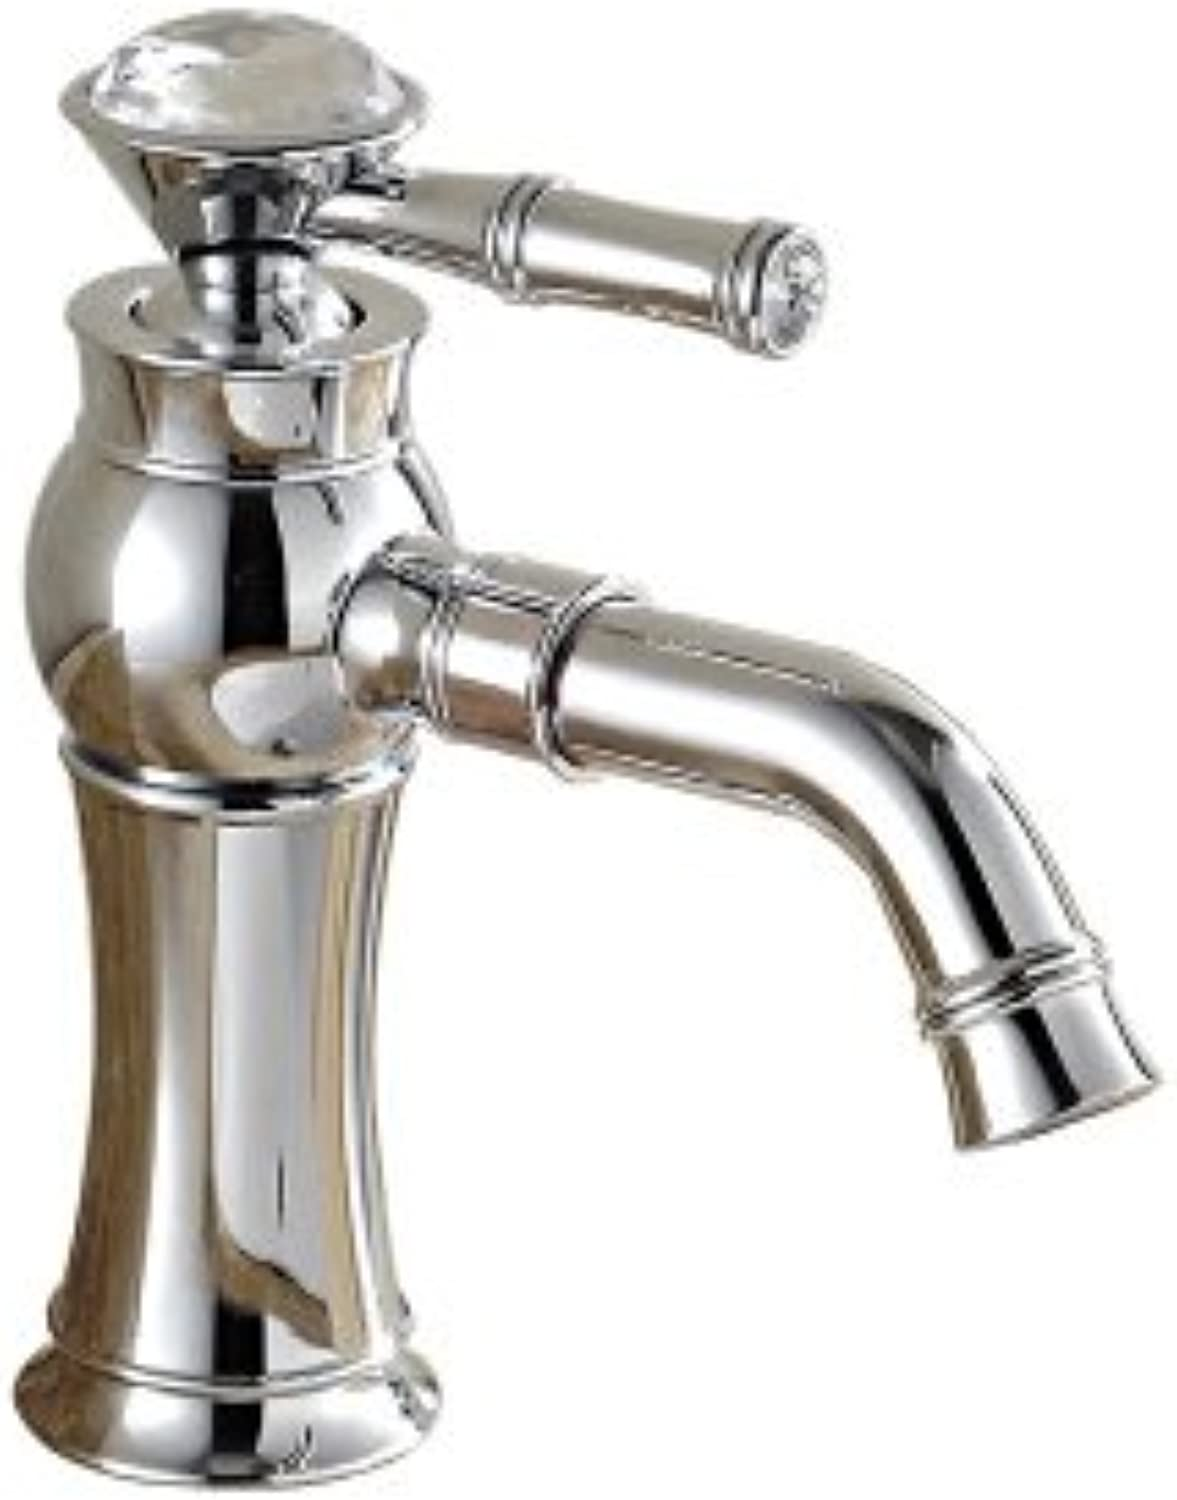 ETERNAL QUALITY Bathroom Sink Basin Tap Brass Mixer Tap Washroom Mixer Faucet Hot and cold basin gold kitchen faucet hot and cold basin A plated low Kitchen Sink Taps